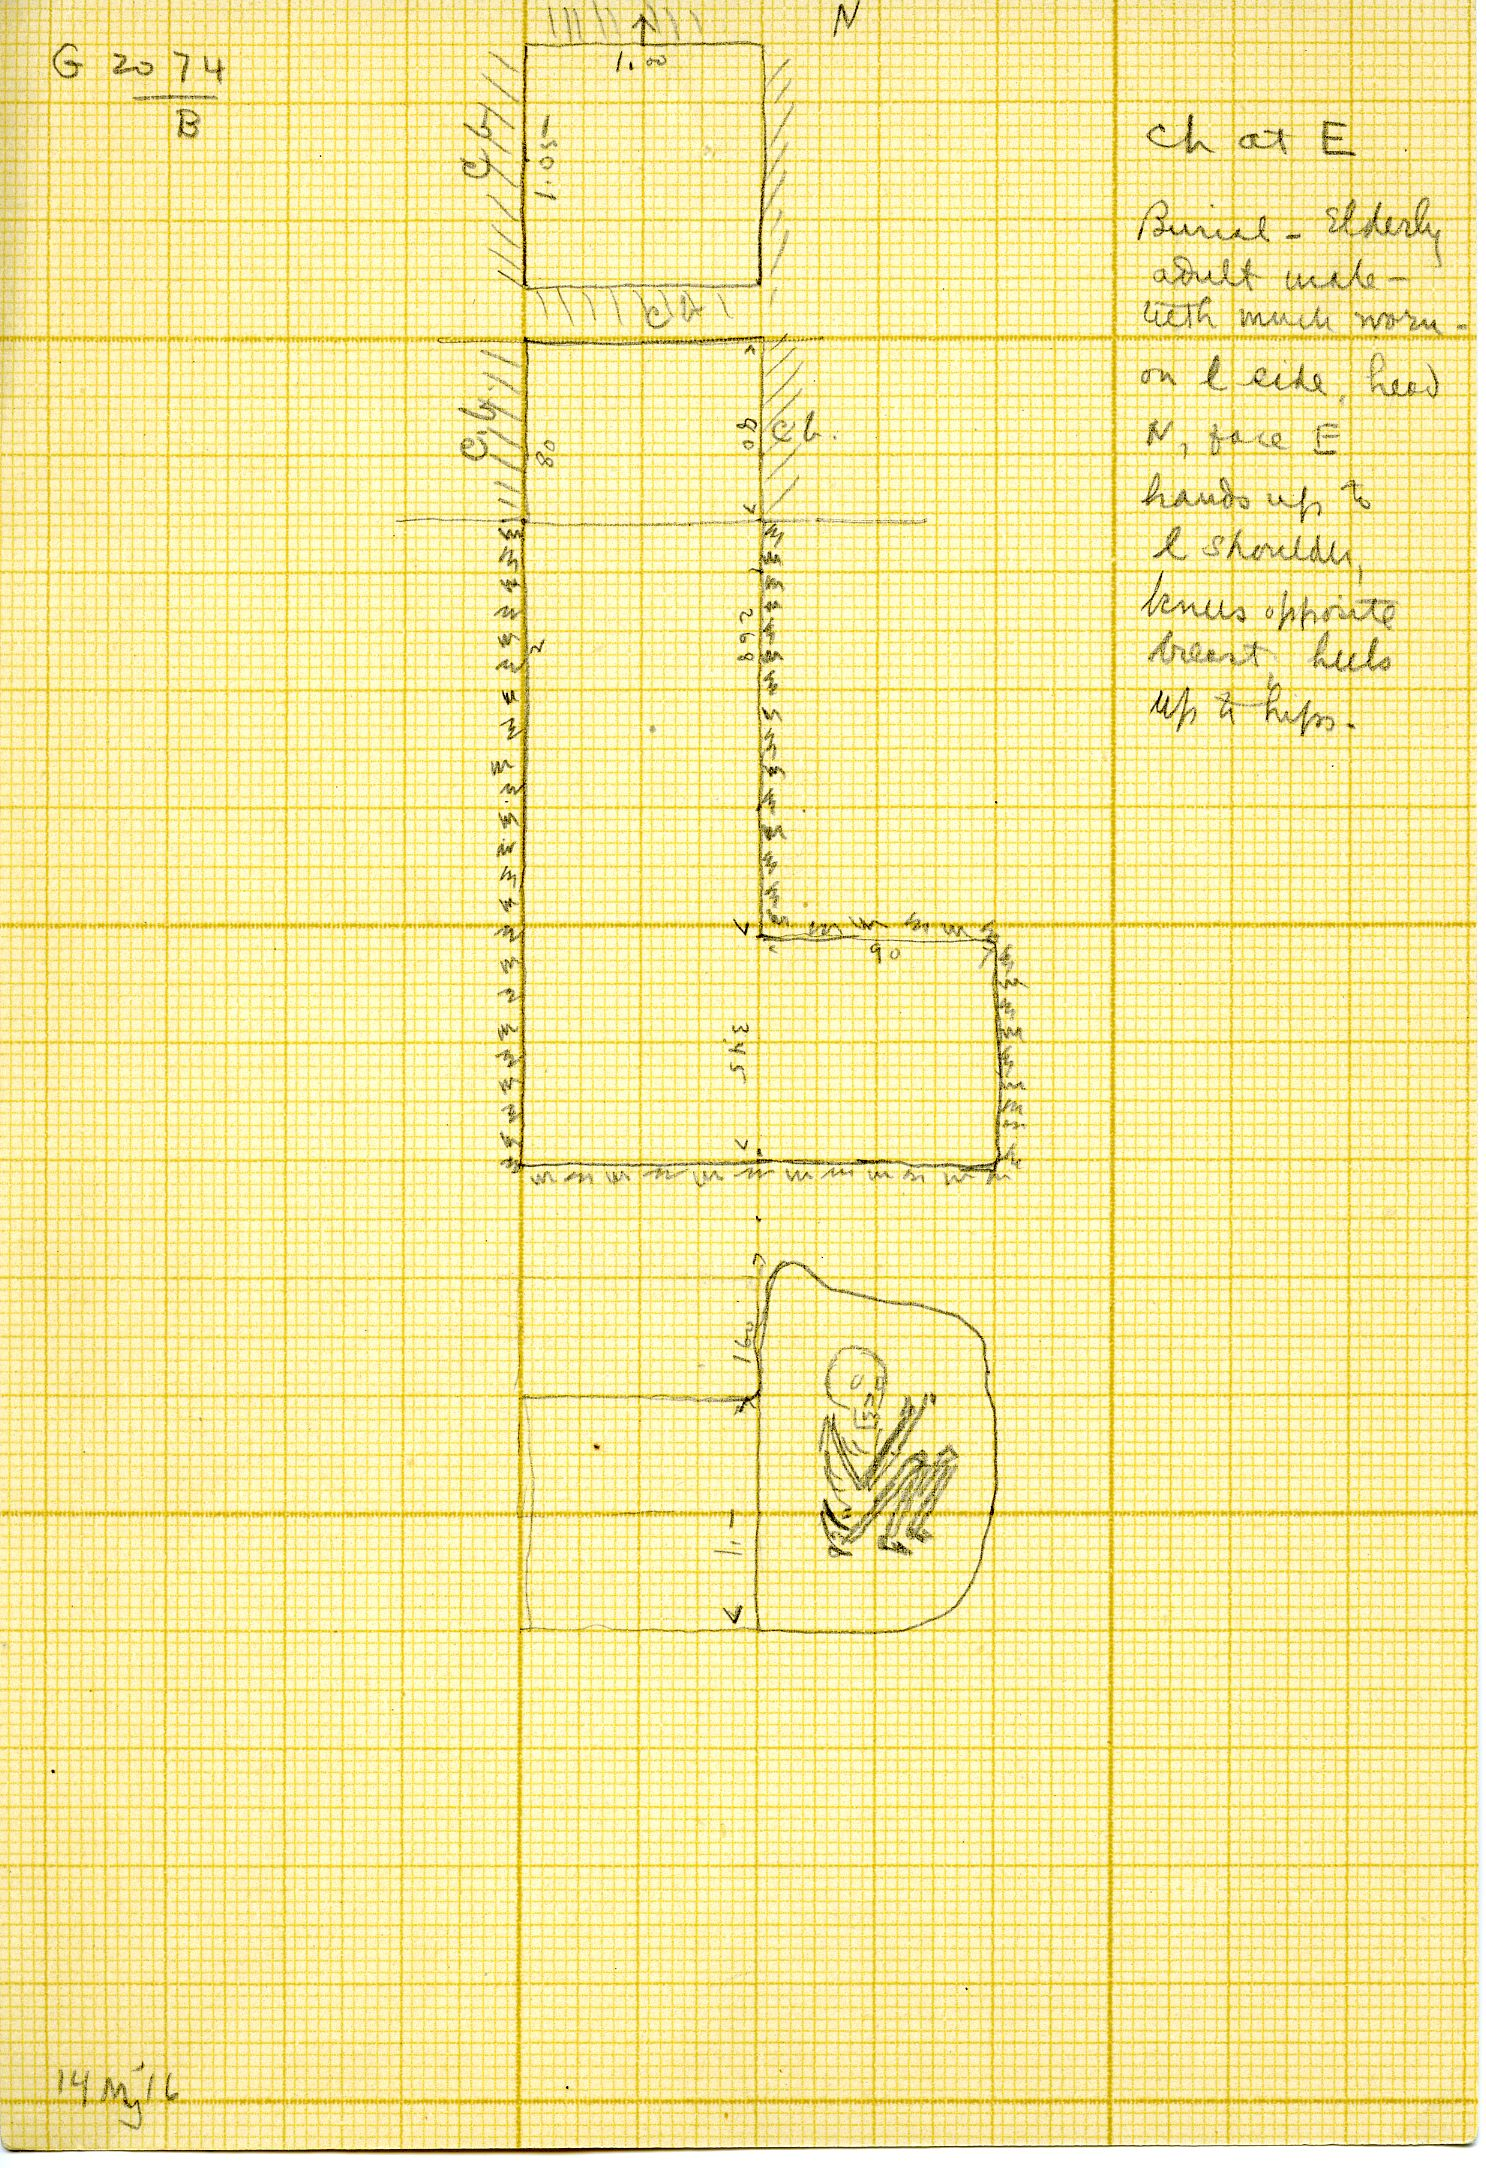 Maps and plans: G 3074, Shaft B